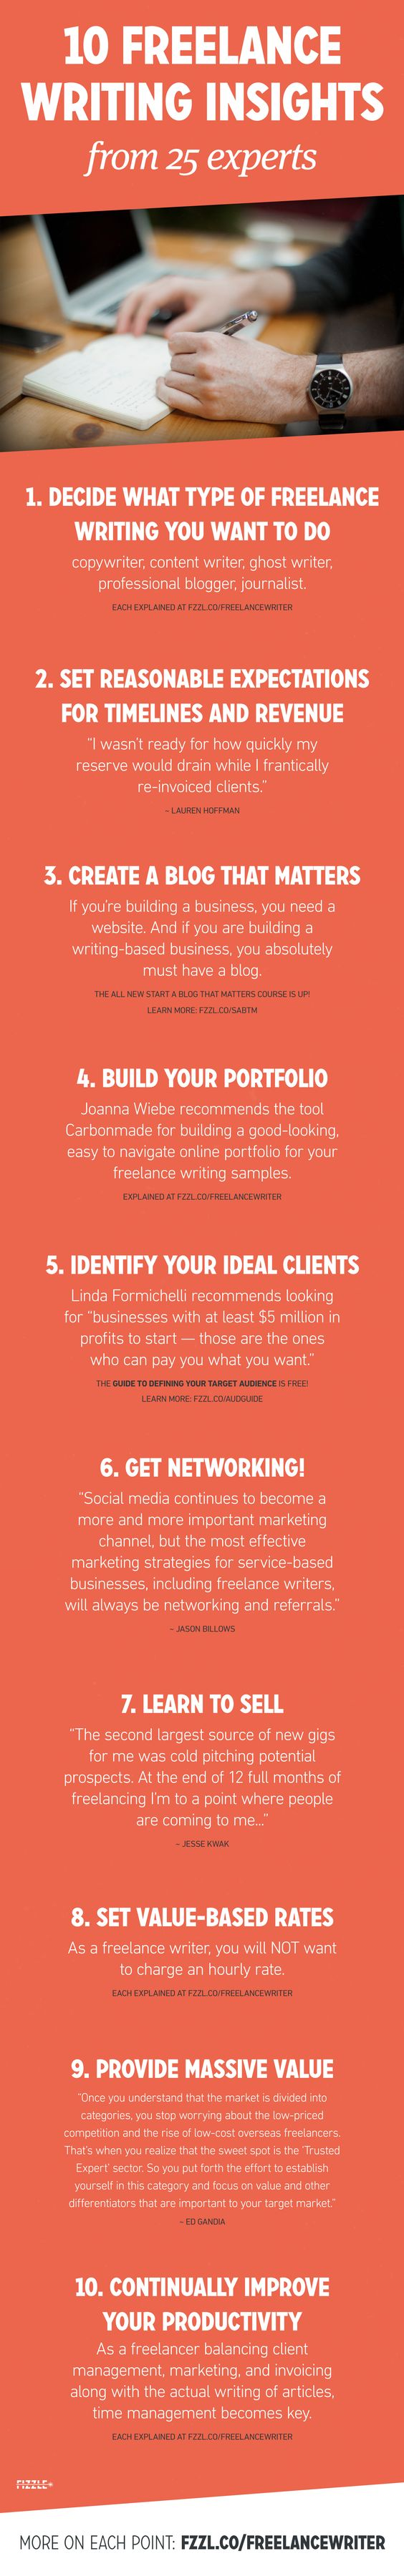 How to Become a Freelance Writer: 10 Tips